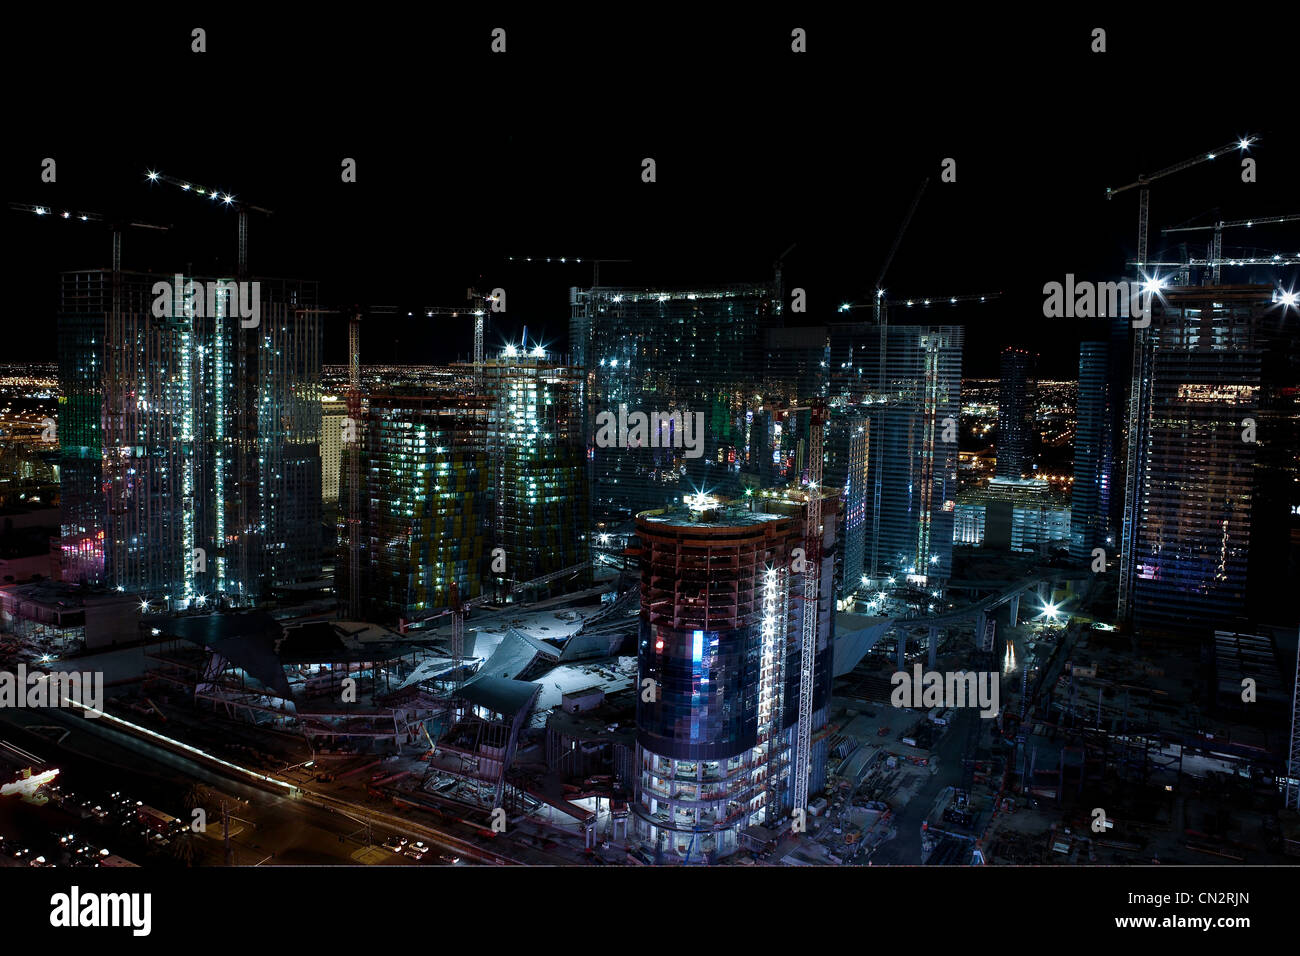 Skyscrapers and construction, Las Vegas, Nevada, USA - Stock Image